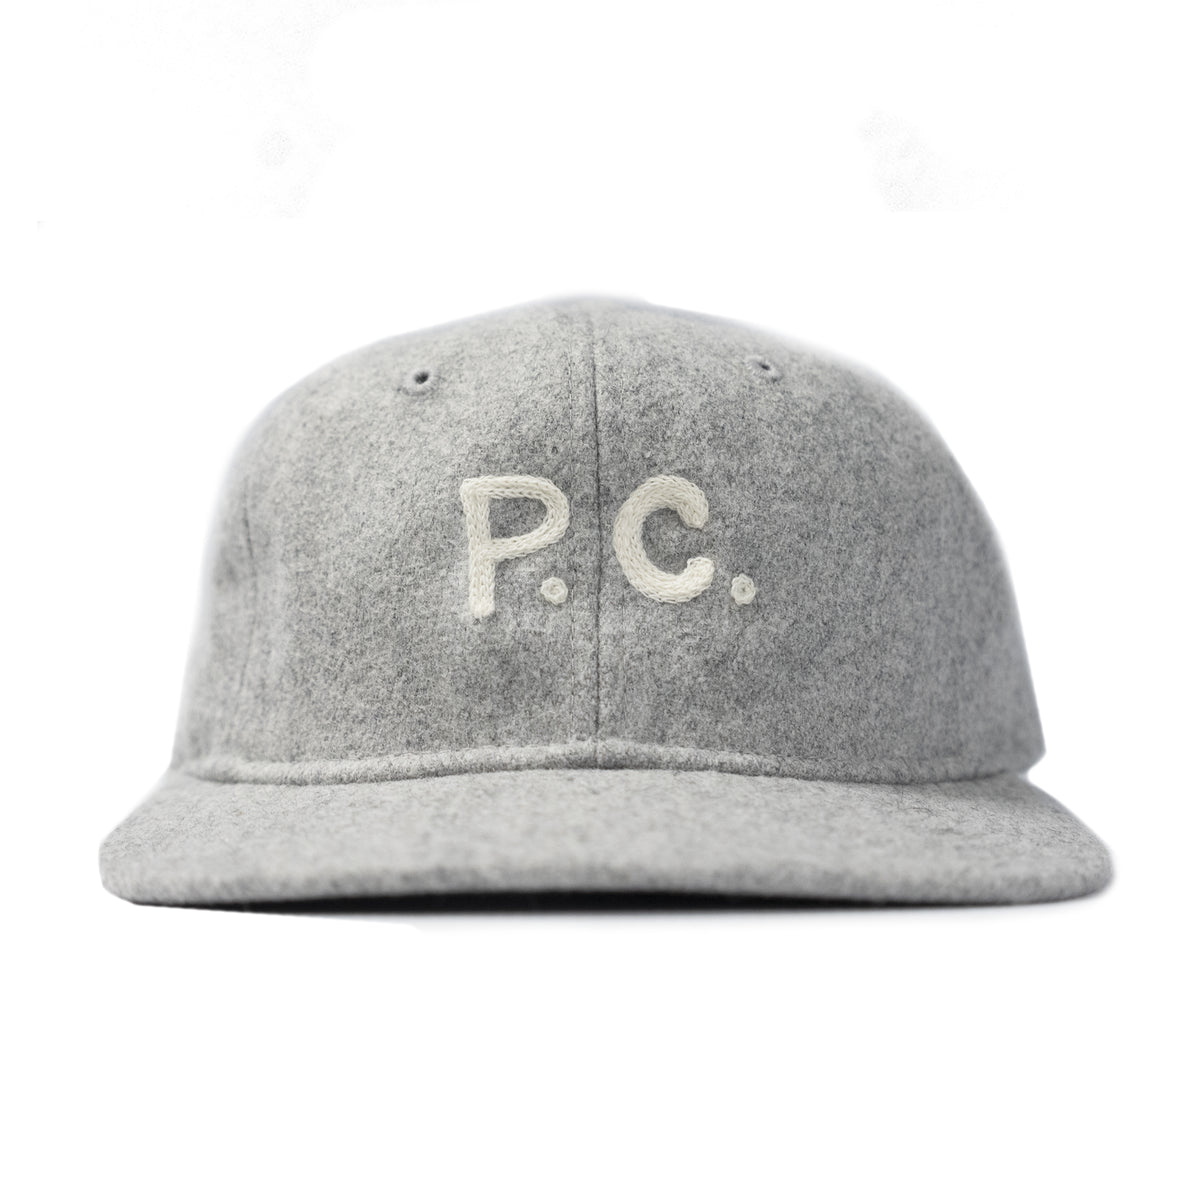 CHAINSTITCH P.C. CAP